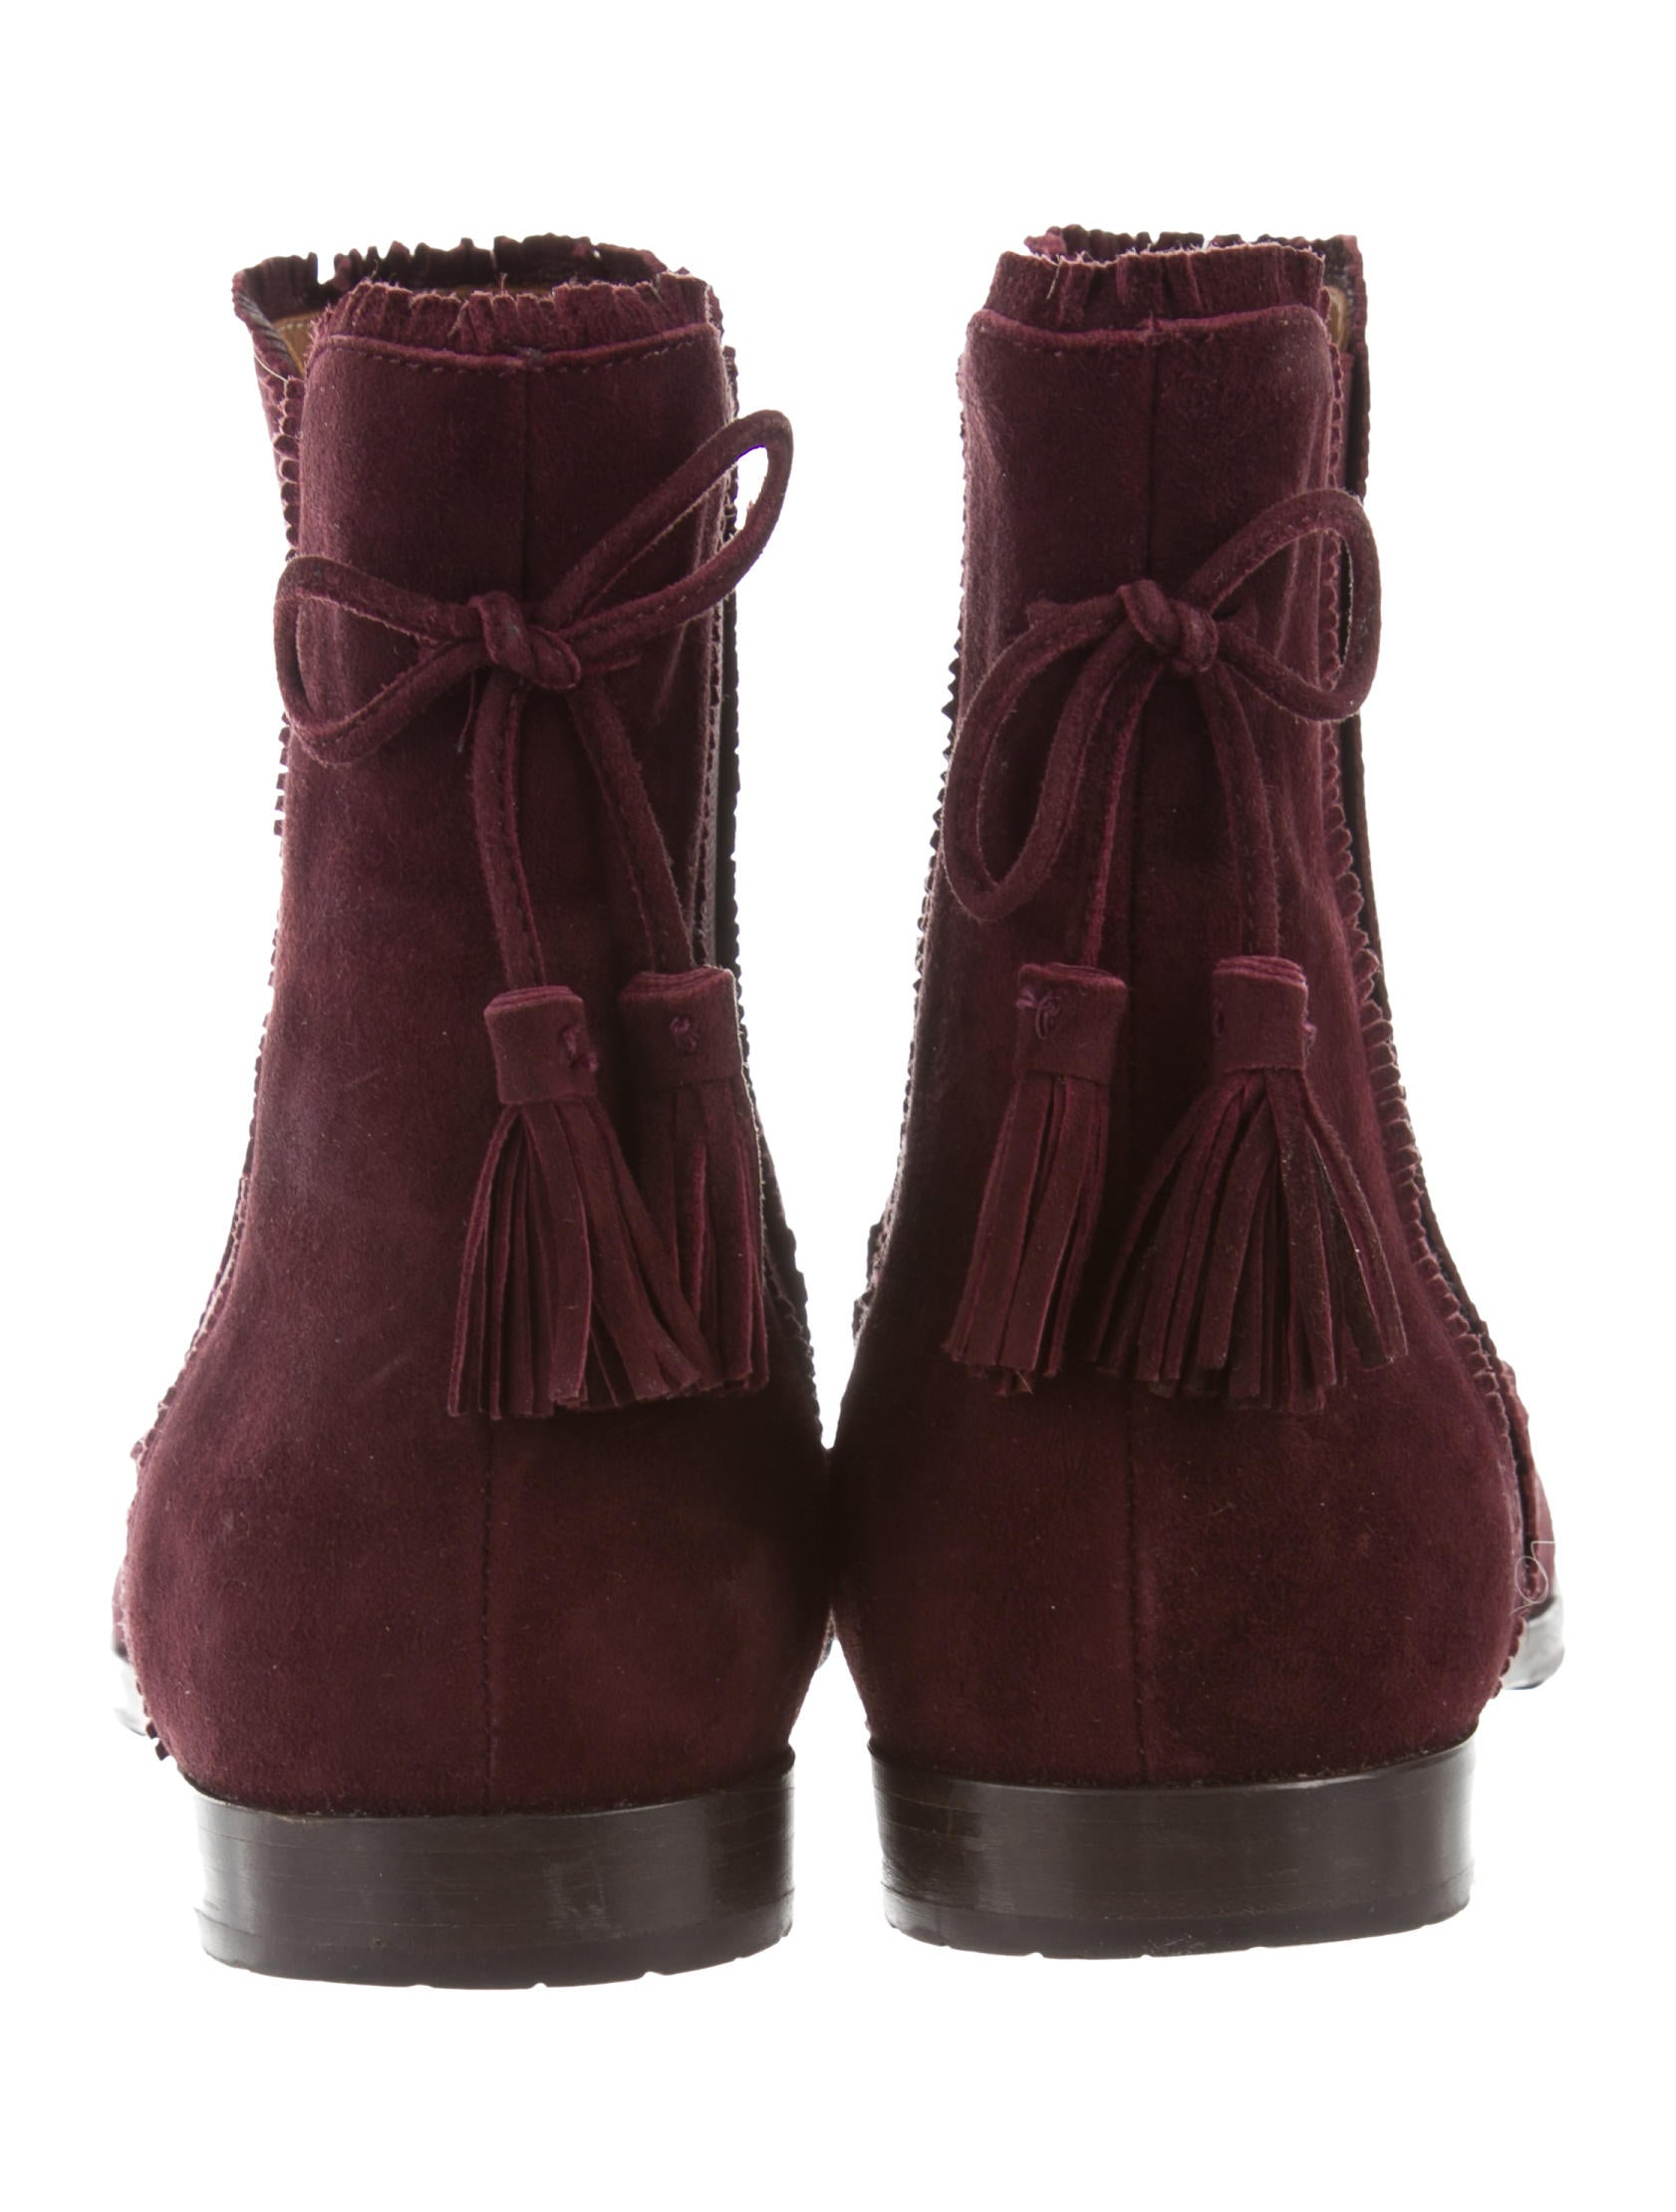 Aquazzura Suede Beatle Boots outlet free shipping classic cheap sale shop for YhvuD2n